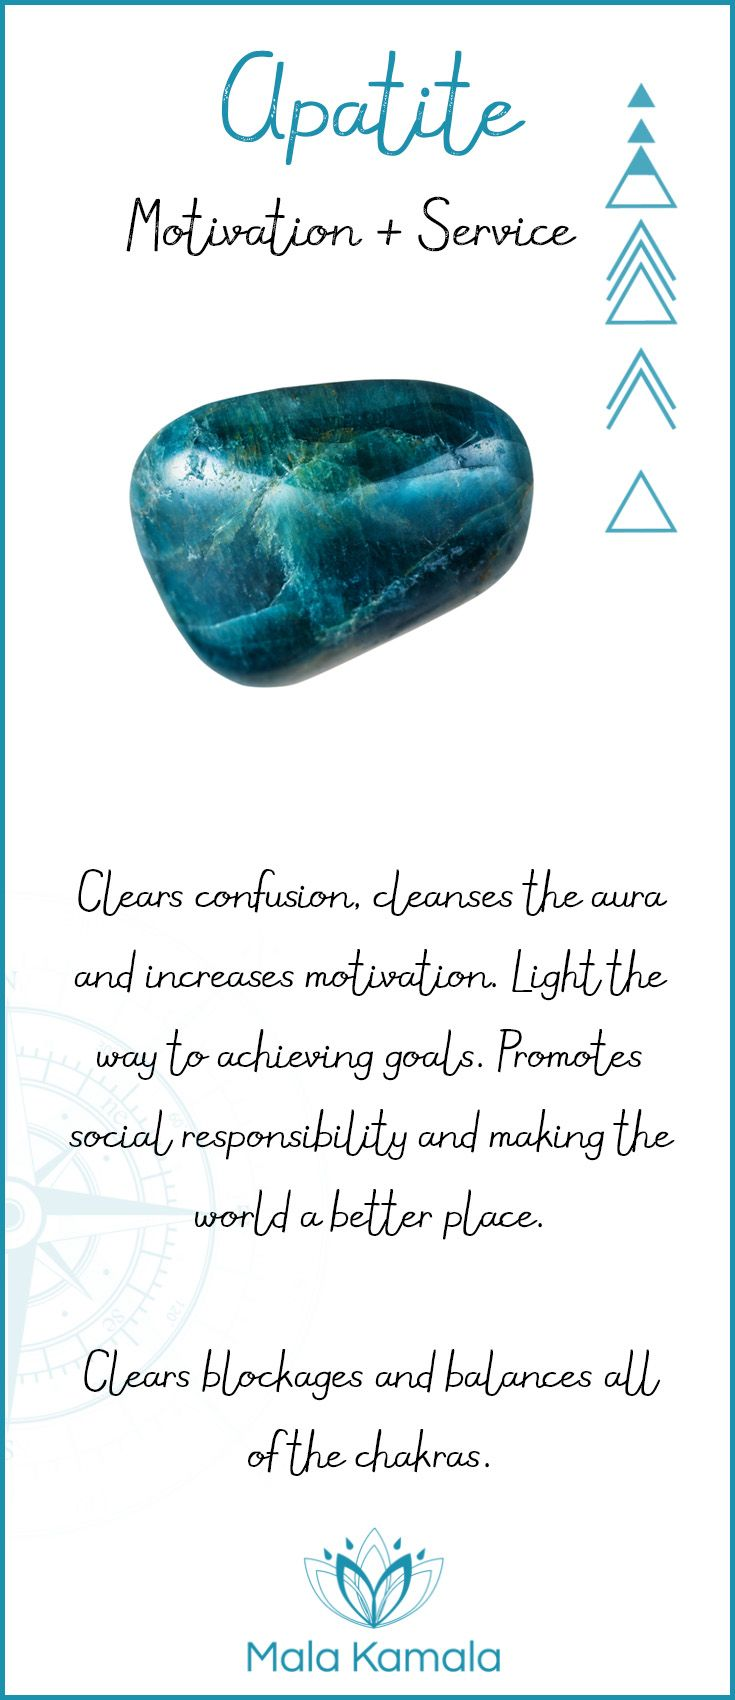 Pin To Save, Tap To Shop The Gem. What is the meaning and crystal and chakra healing properties of apatite? A stone for motivation and service. Mala Kamala Mala Beads - Malas, Mala Beads, Mala Bracelets, Tiny Intentions, Baby Necklaces, Yoga Jewelry, Meditation Jewelry, Baltic Amber Necklaces, Gemstone Jewelry, Chakra Healing and Crystal Healing Jewelry, Mala Necklaces, Prayer Beads, Sacred Jewelry, Bohemian Boho Jewelry, Childrens and Babies Jewelry.